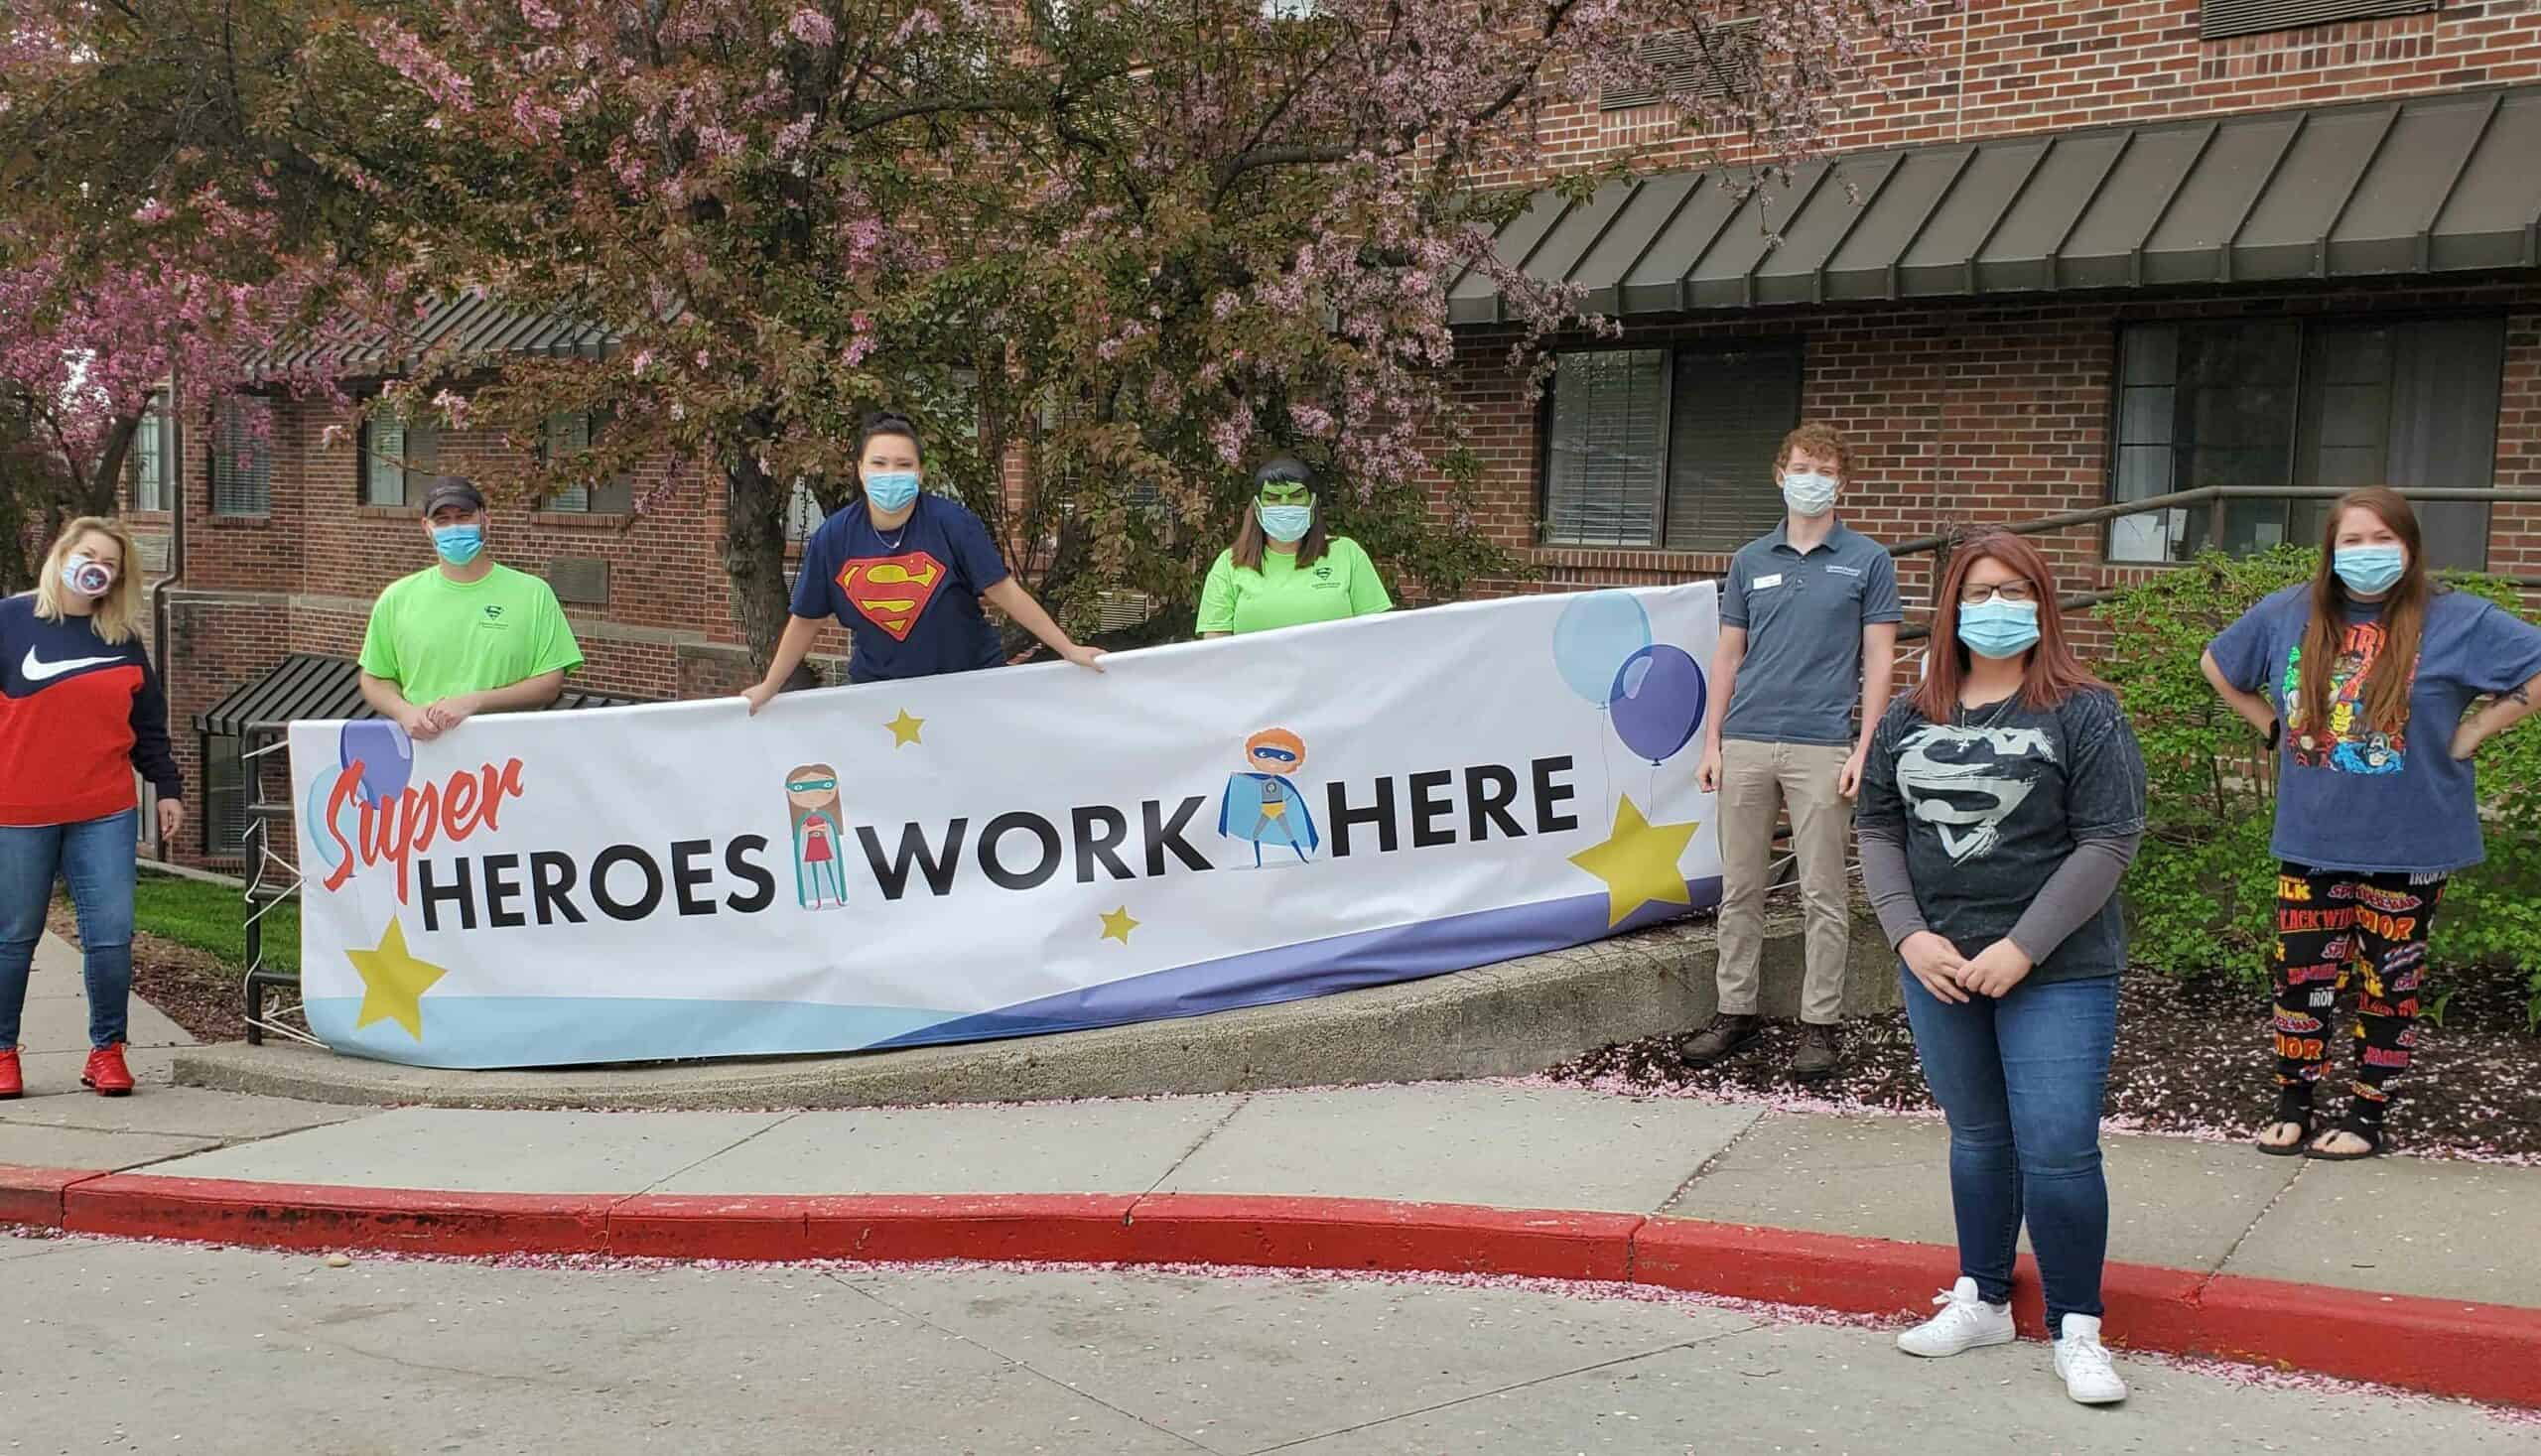 """A group of employees wearing masks, social distancing and holding up a sign that says """"HEROES WORK HERE""""."""